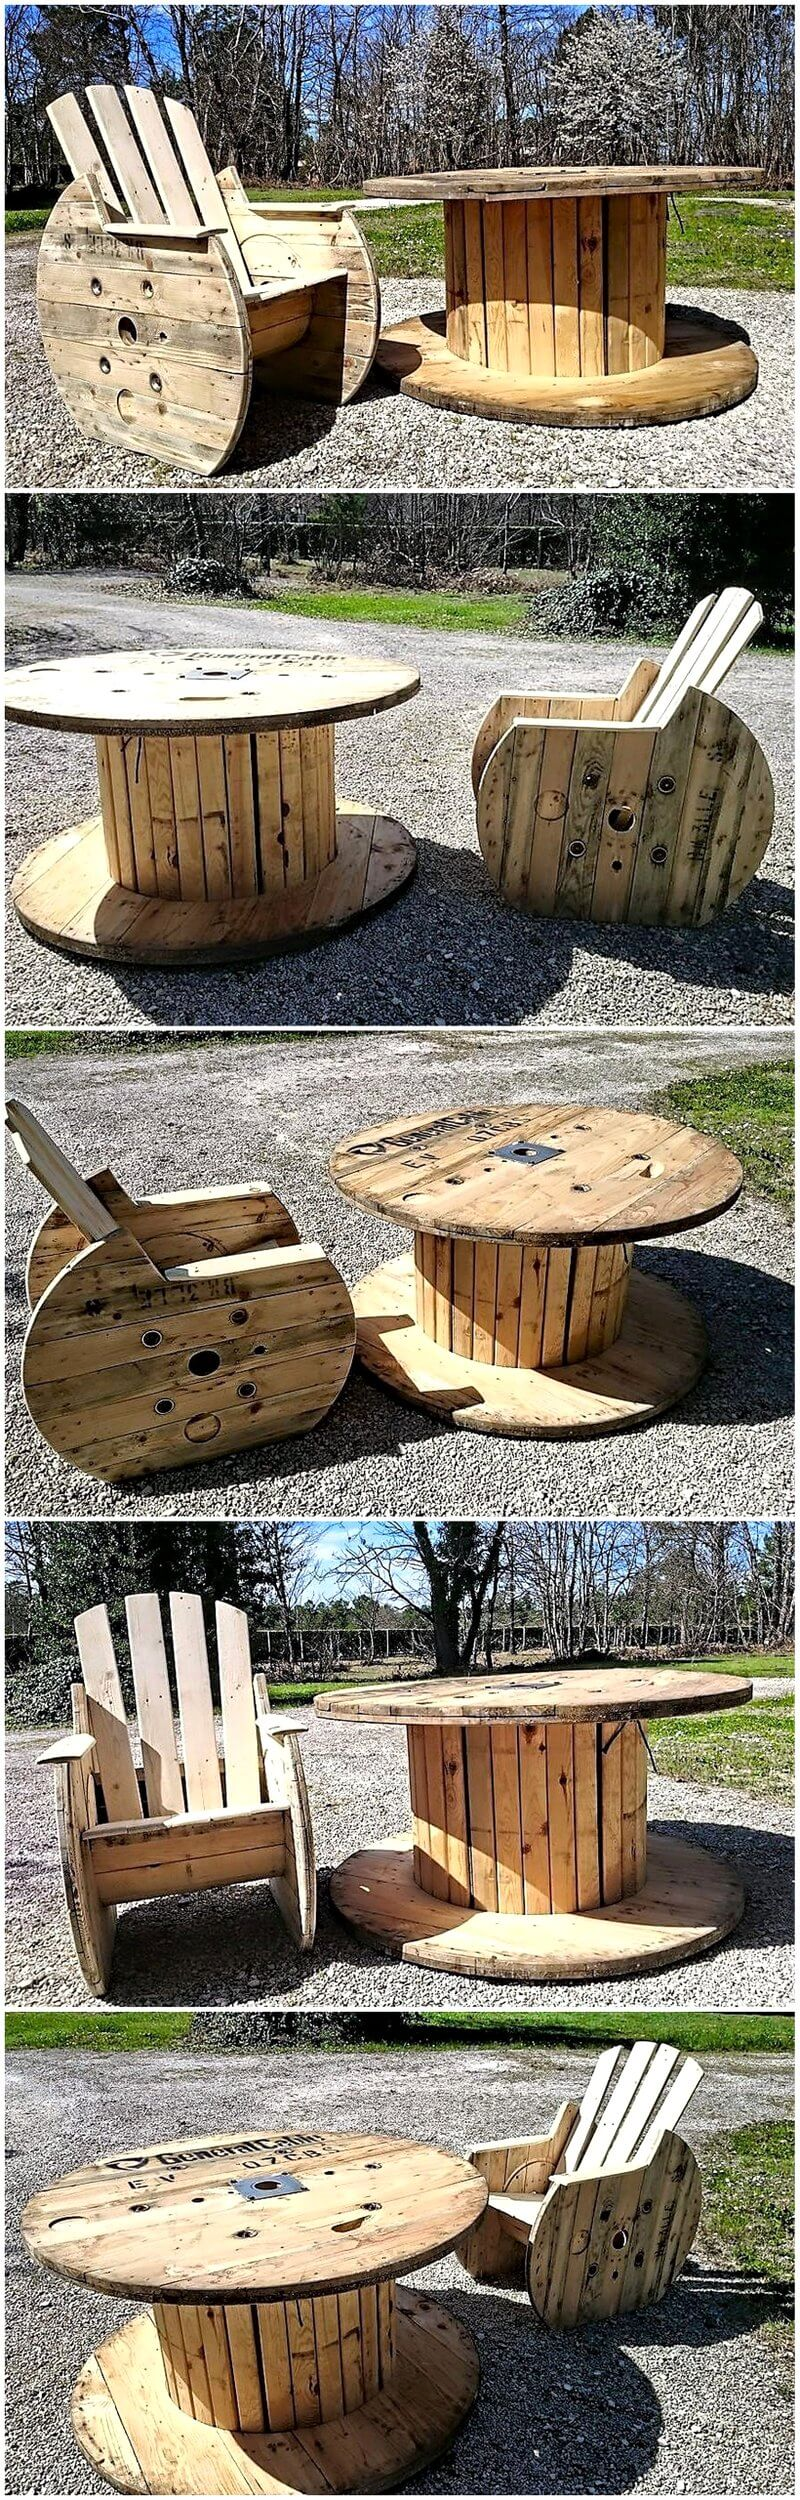 Reclaimed Cable Reel Pallets Patio Furniture Set Wood